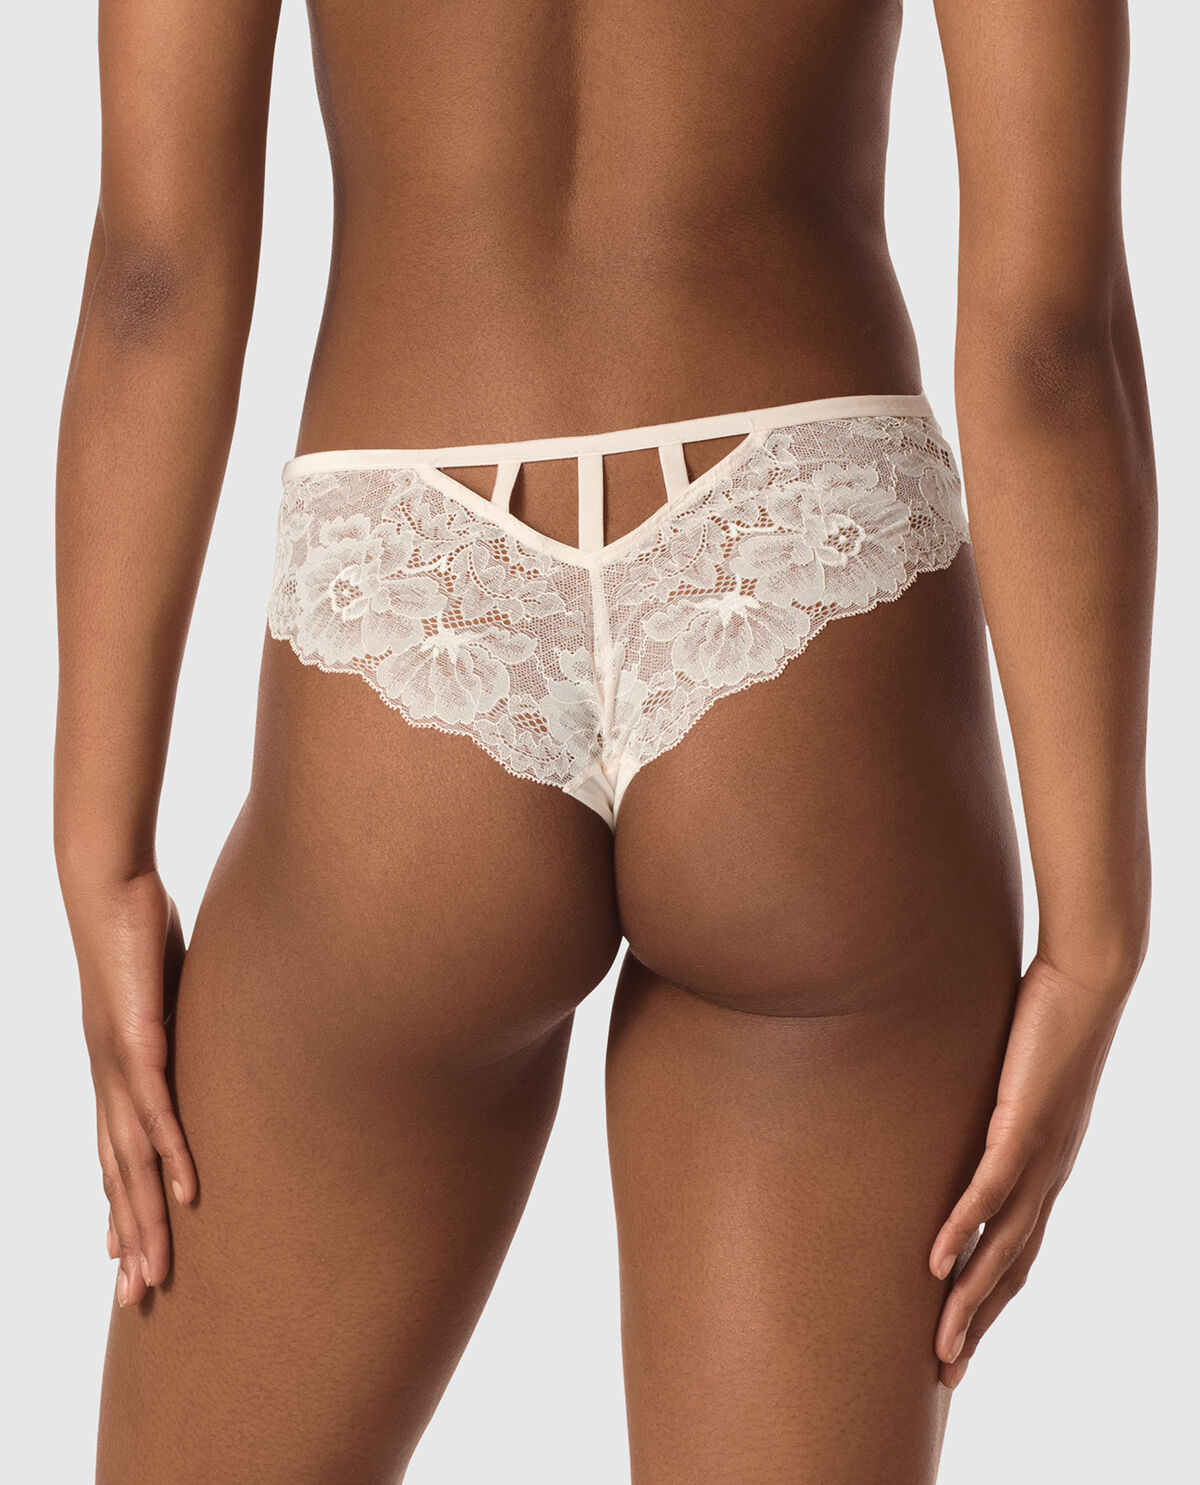 4 ladies x store peach lace brazilian//briefs for just £5.00